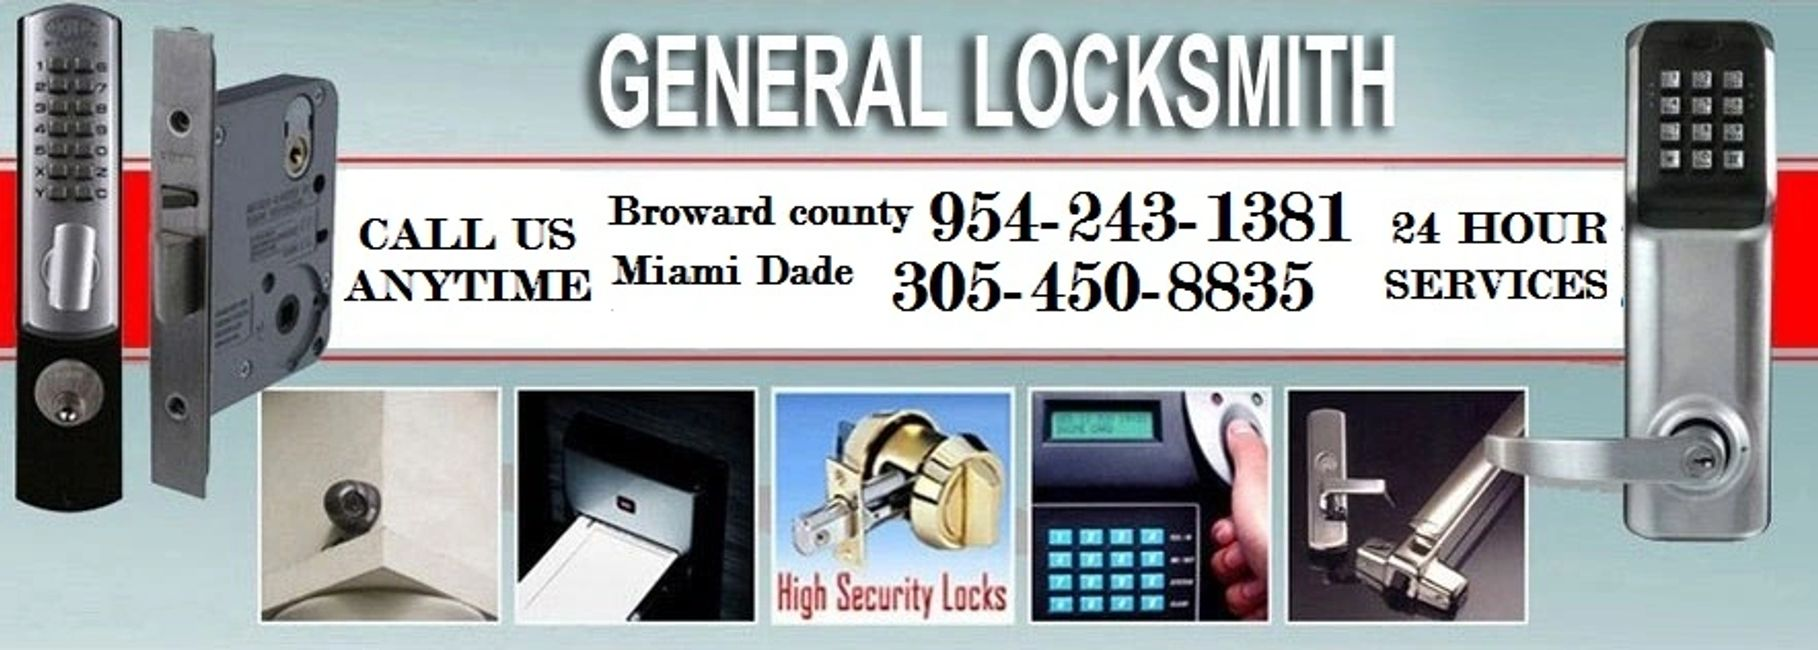 General Locksmith 954-243-1381  mobile locksmith